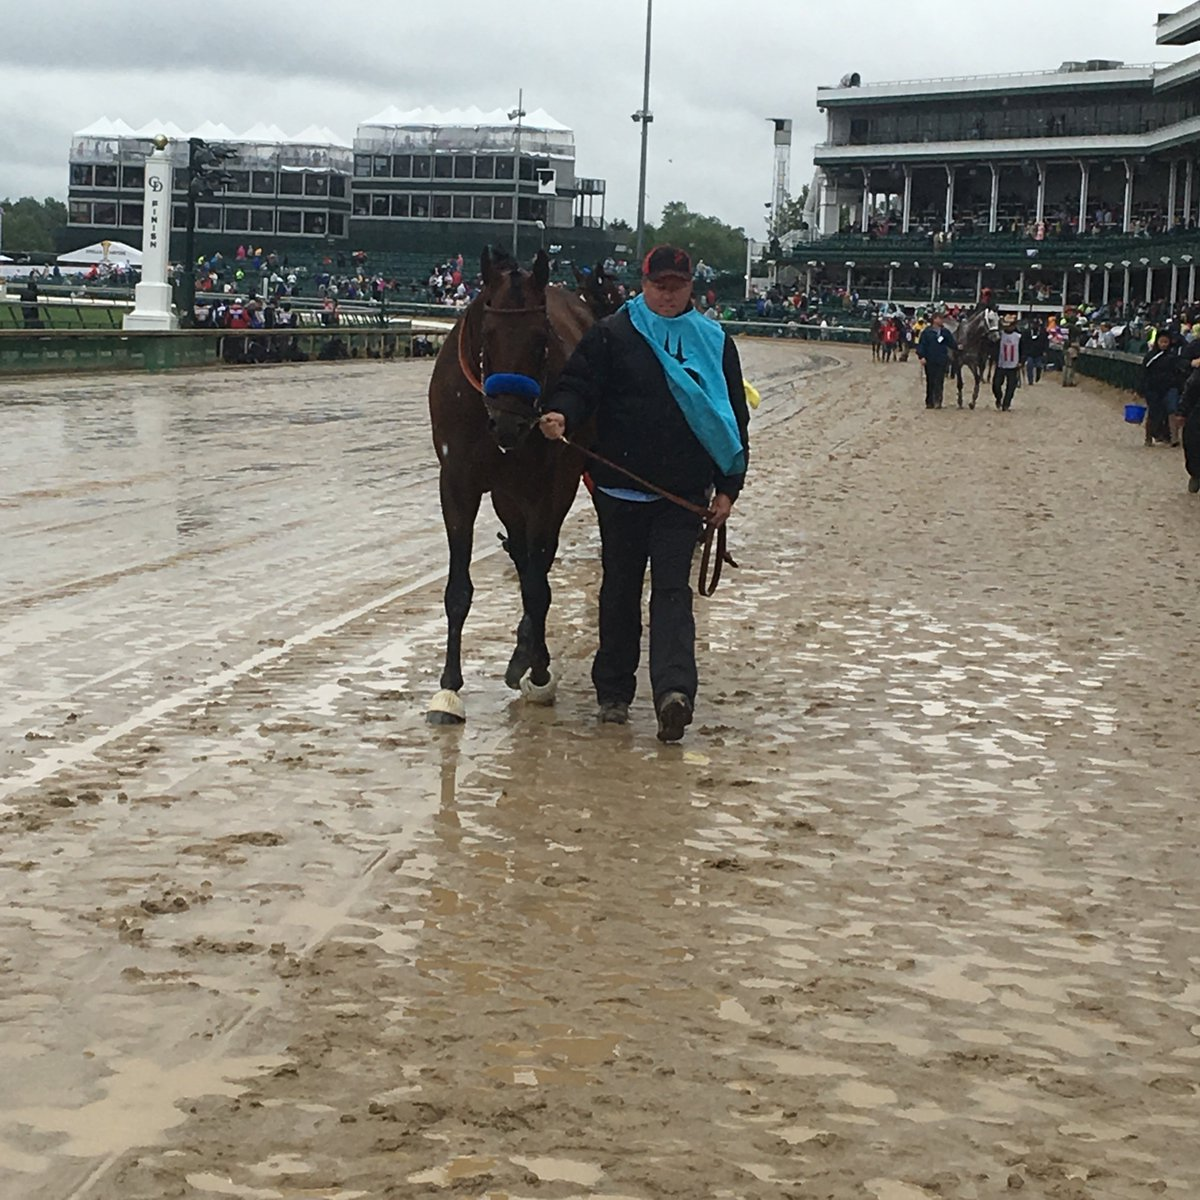 Headed into the paddock for the #Alysheba is #AmericanFreedom, #NobleBird and #BreakingLucky @jordan_sigmon_<br>http://pic.twitter.com/Ii0wUQVnaY